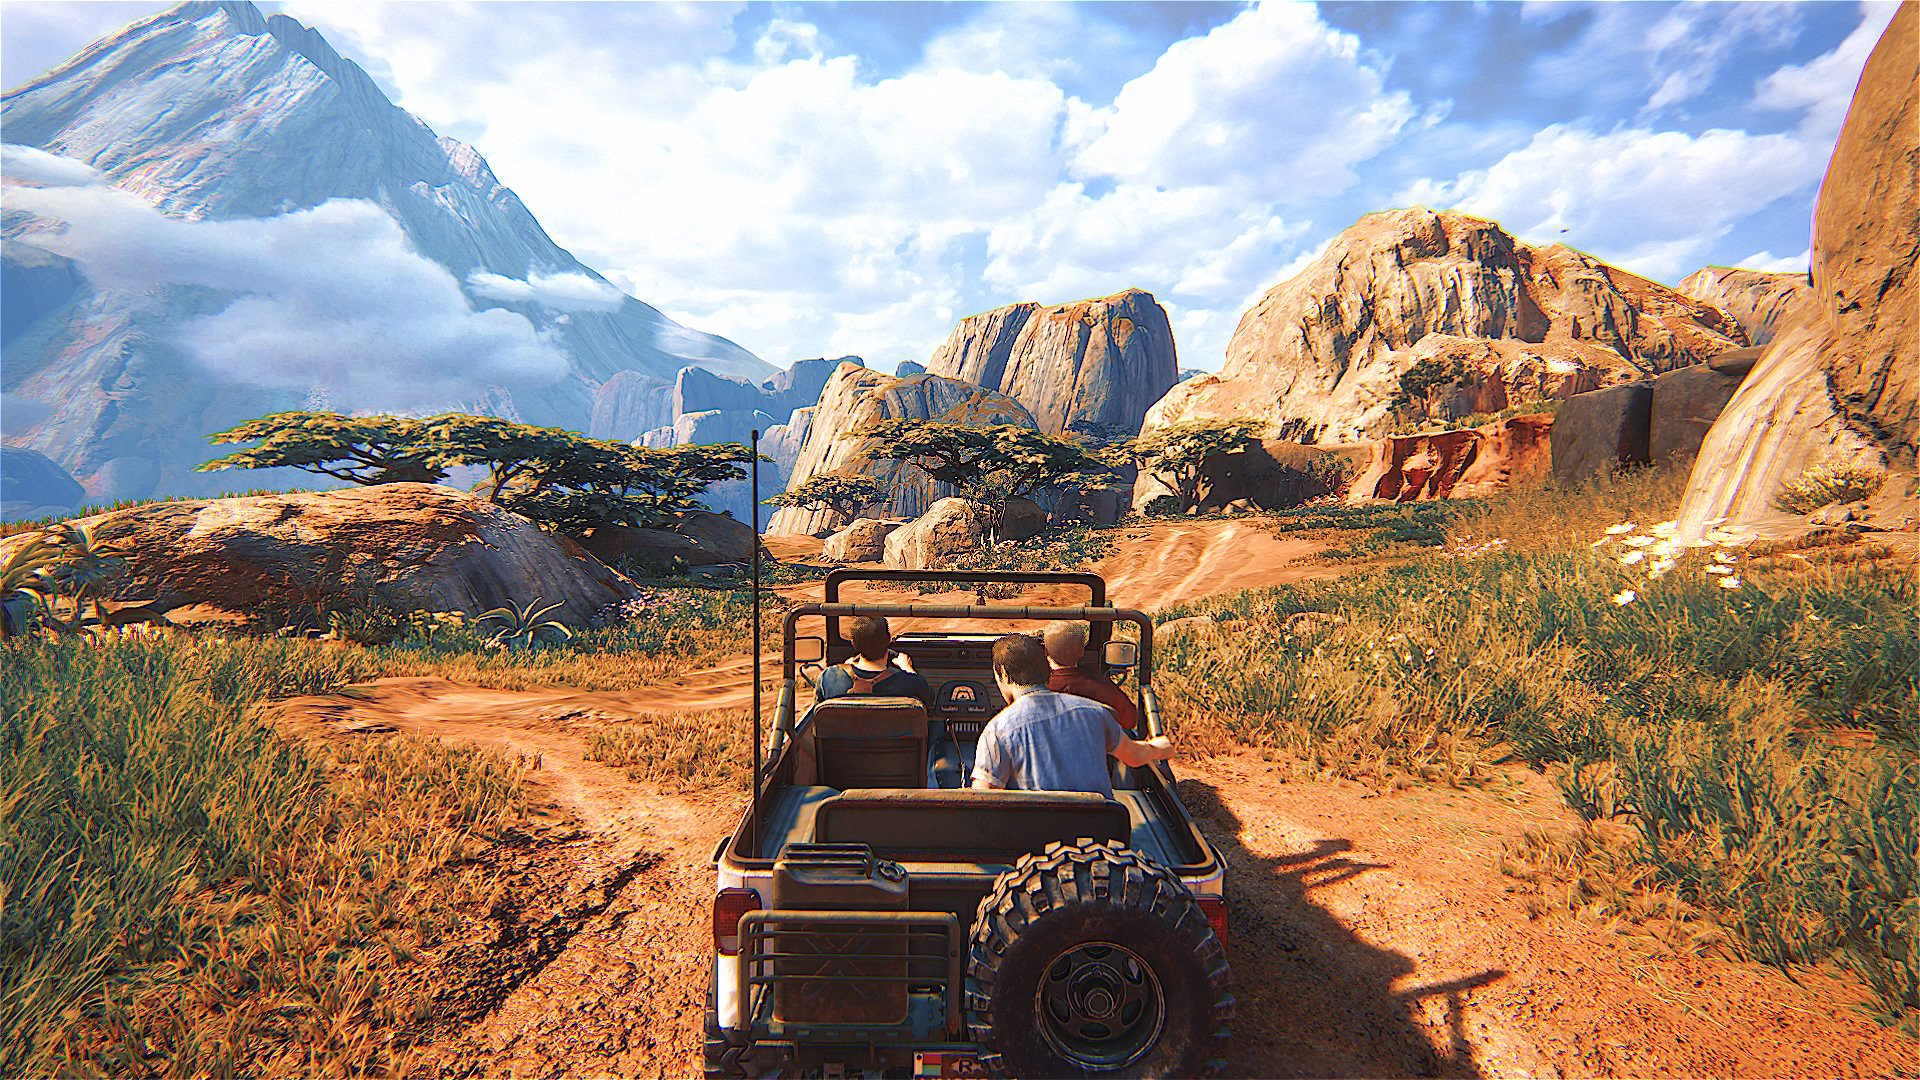 Uncharted4-AThief-sEnd PS4 Div 091